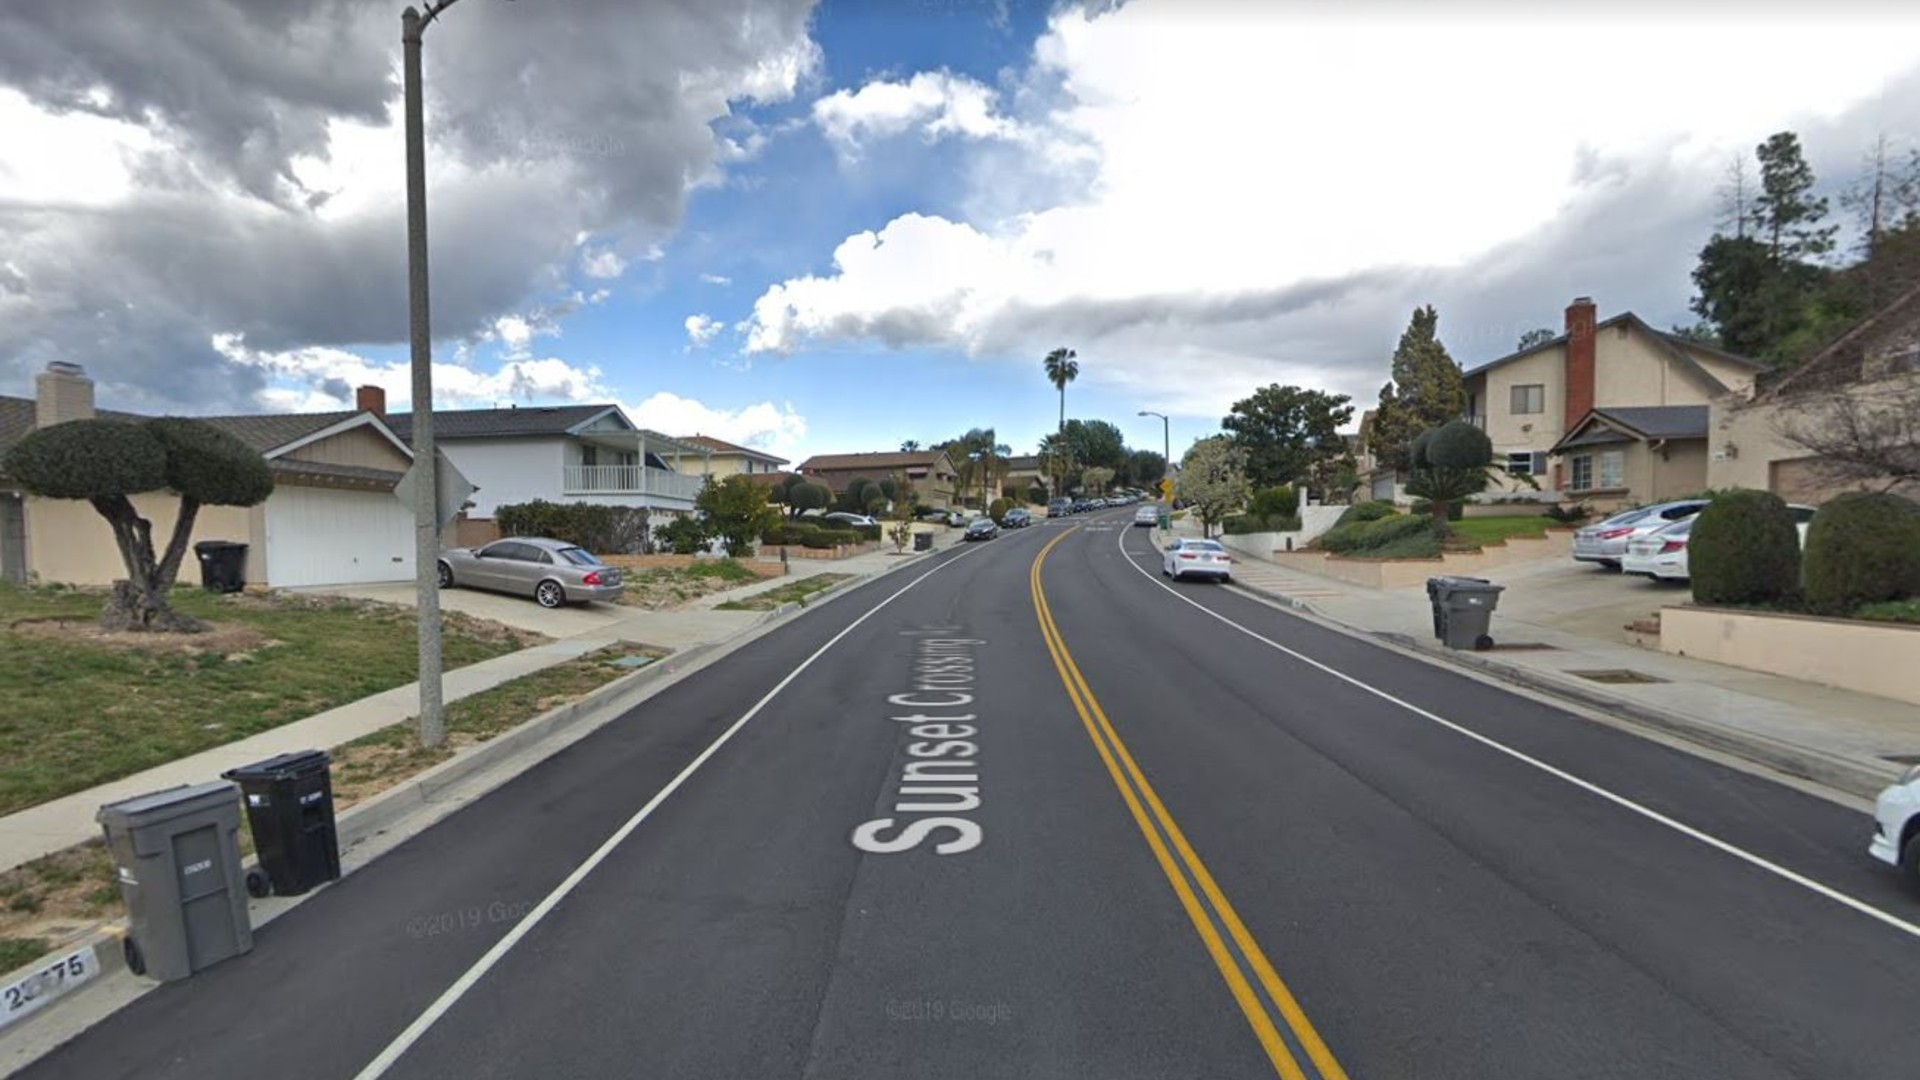 The 23800 block of Sunset Crossing Road in Diamond Bar, as pictured in a Google Street View image.